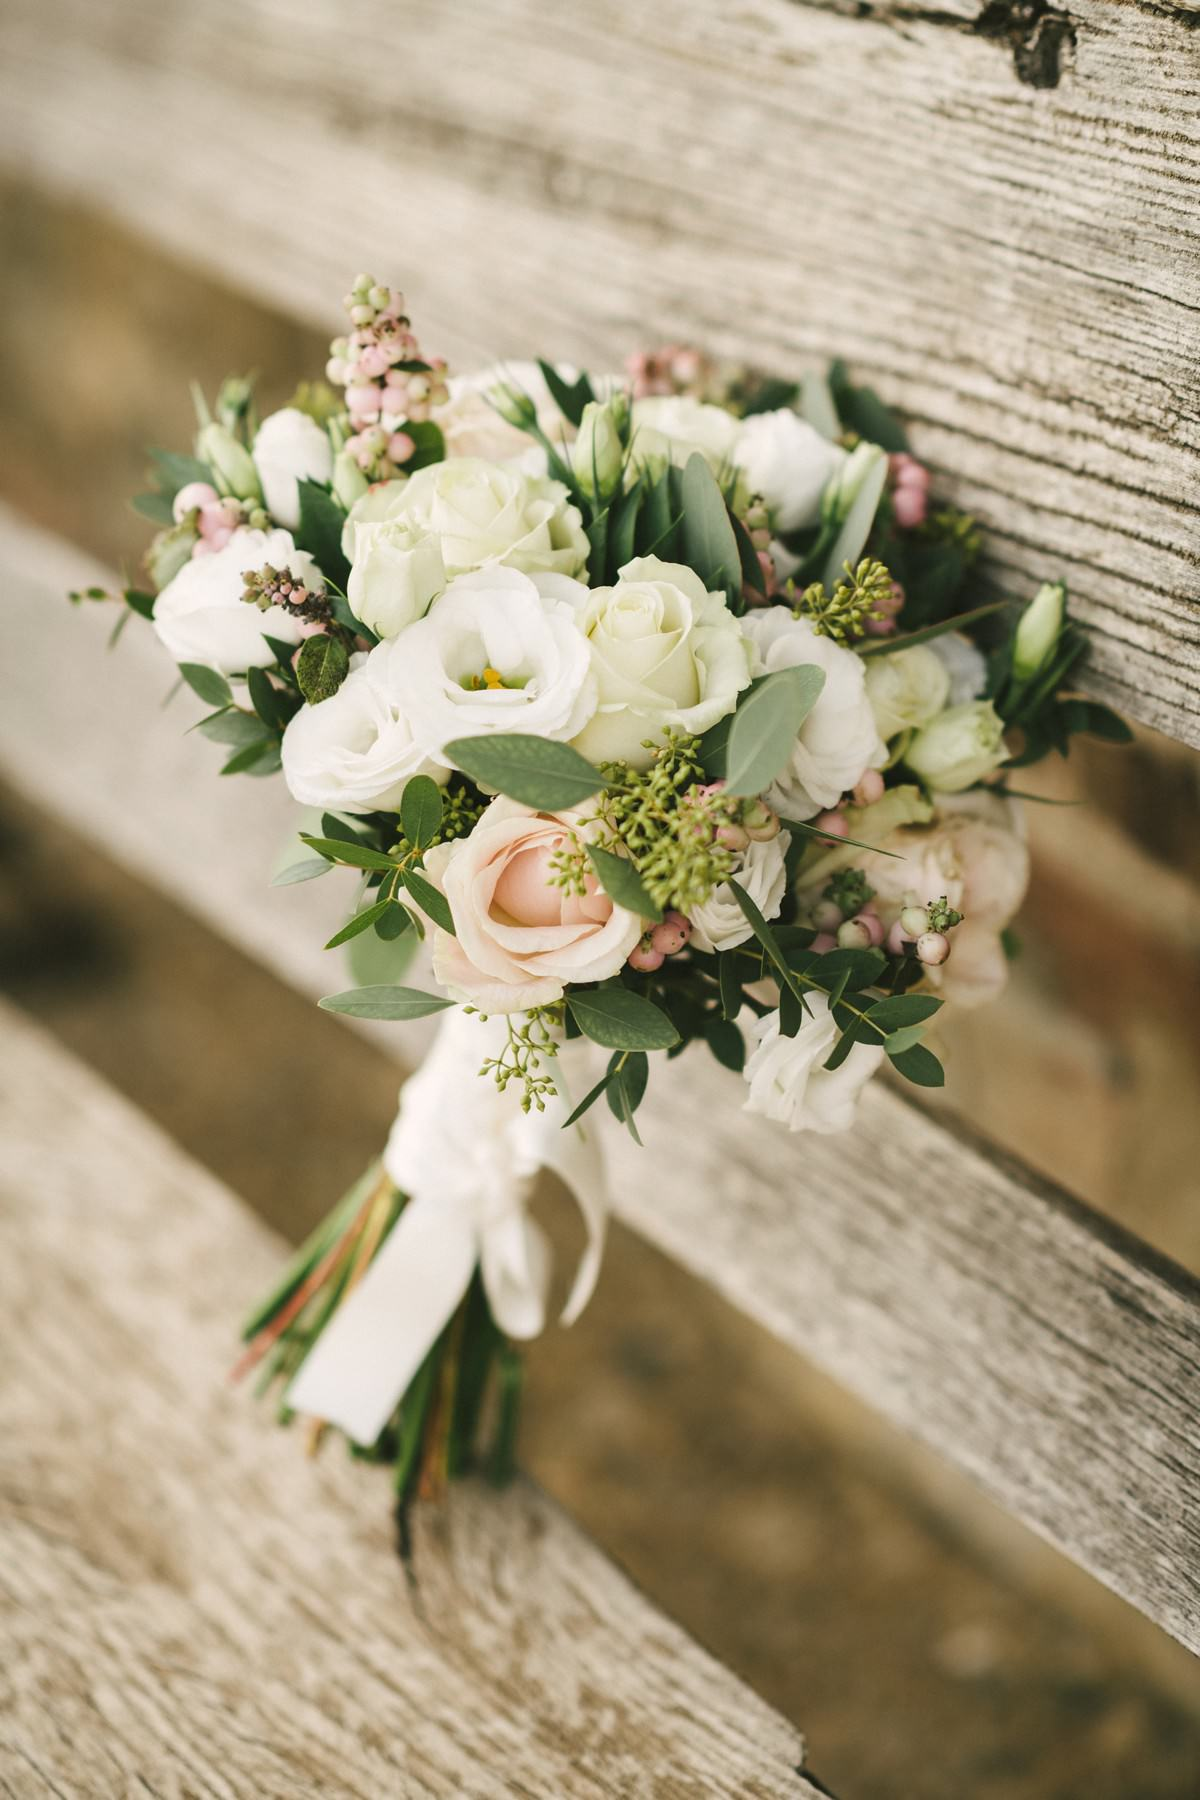 Lovely bride bouquet with green white and roses colours. Intimate and romantic elopement in Tuscany